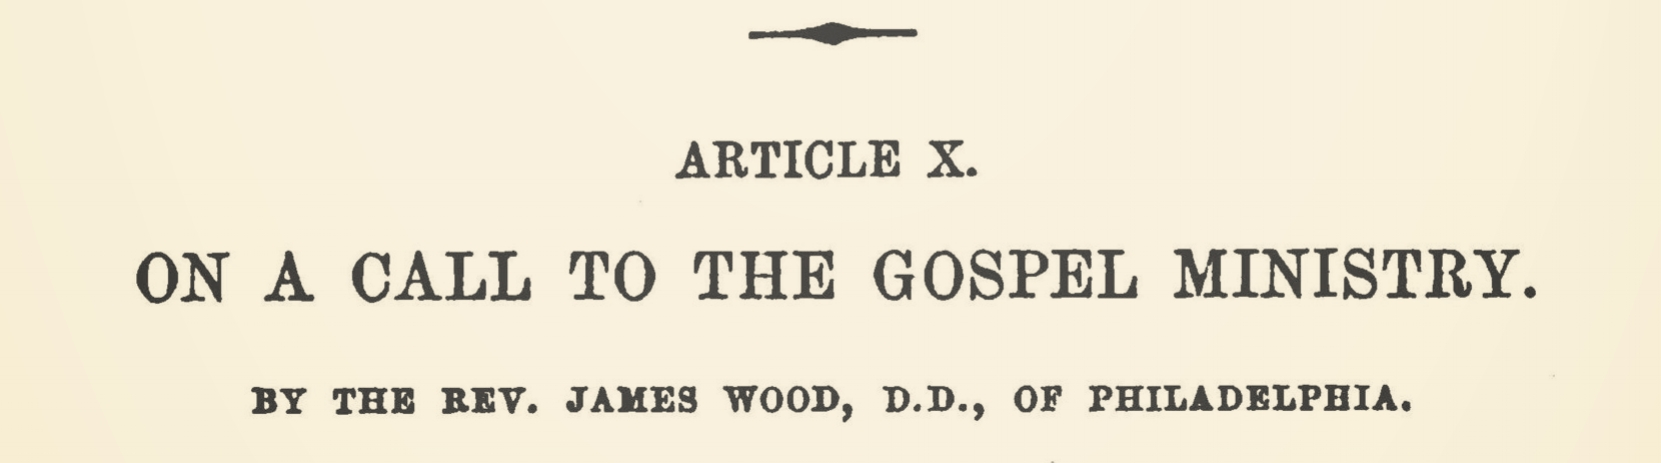 Wood, James, On a Call to the Gospel Ministry Title Page.jpg